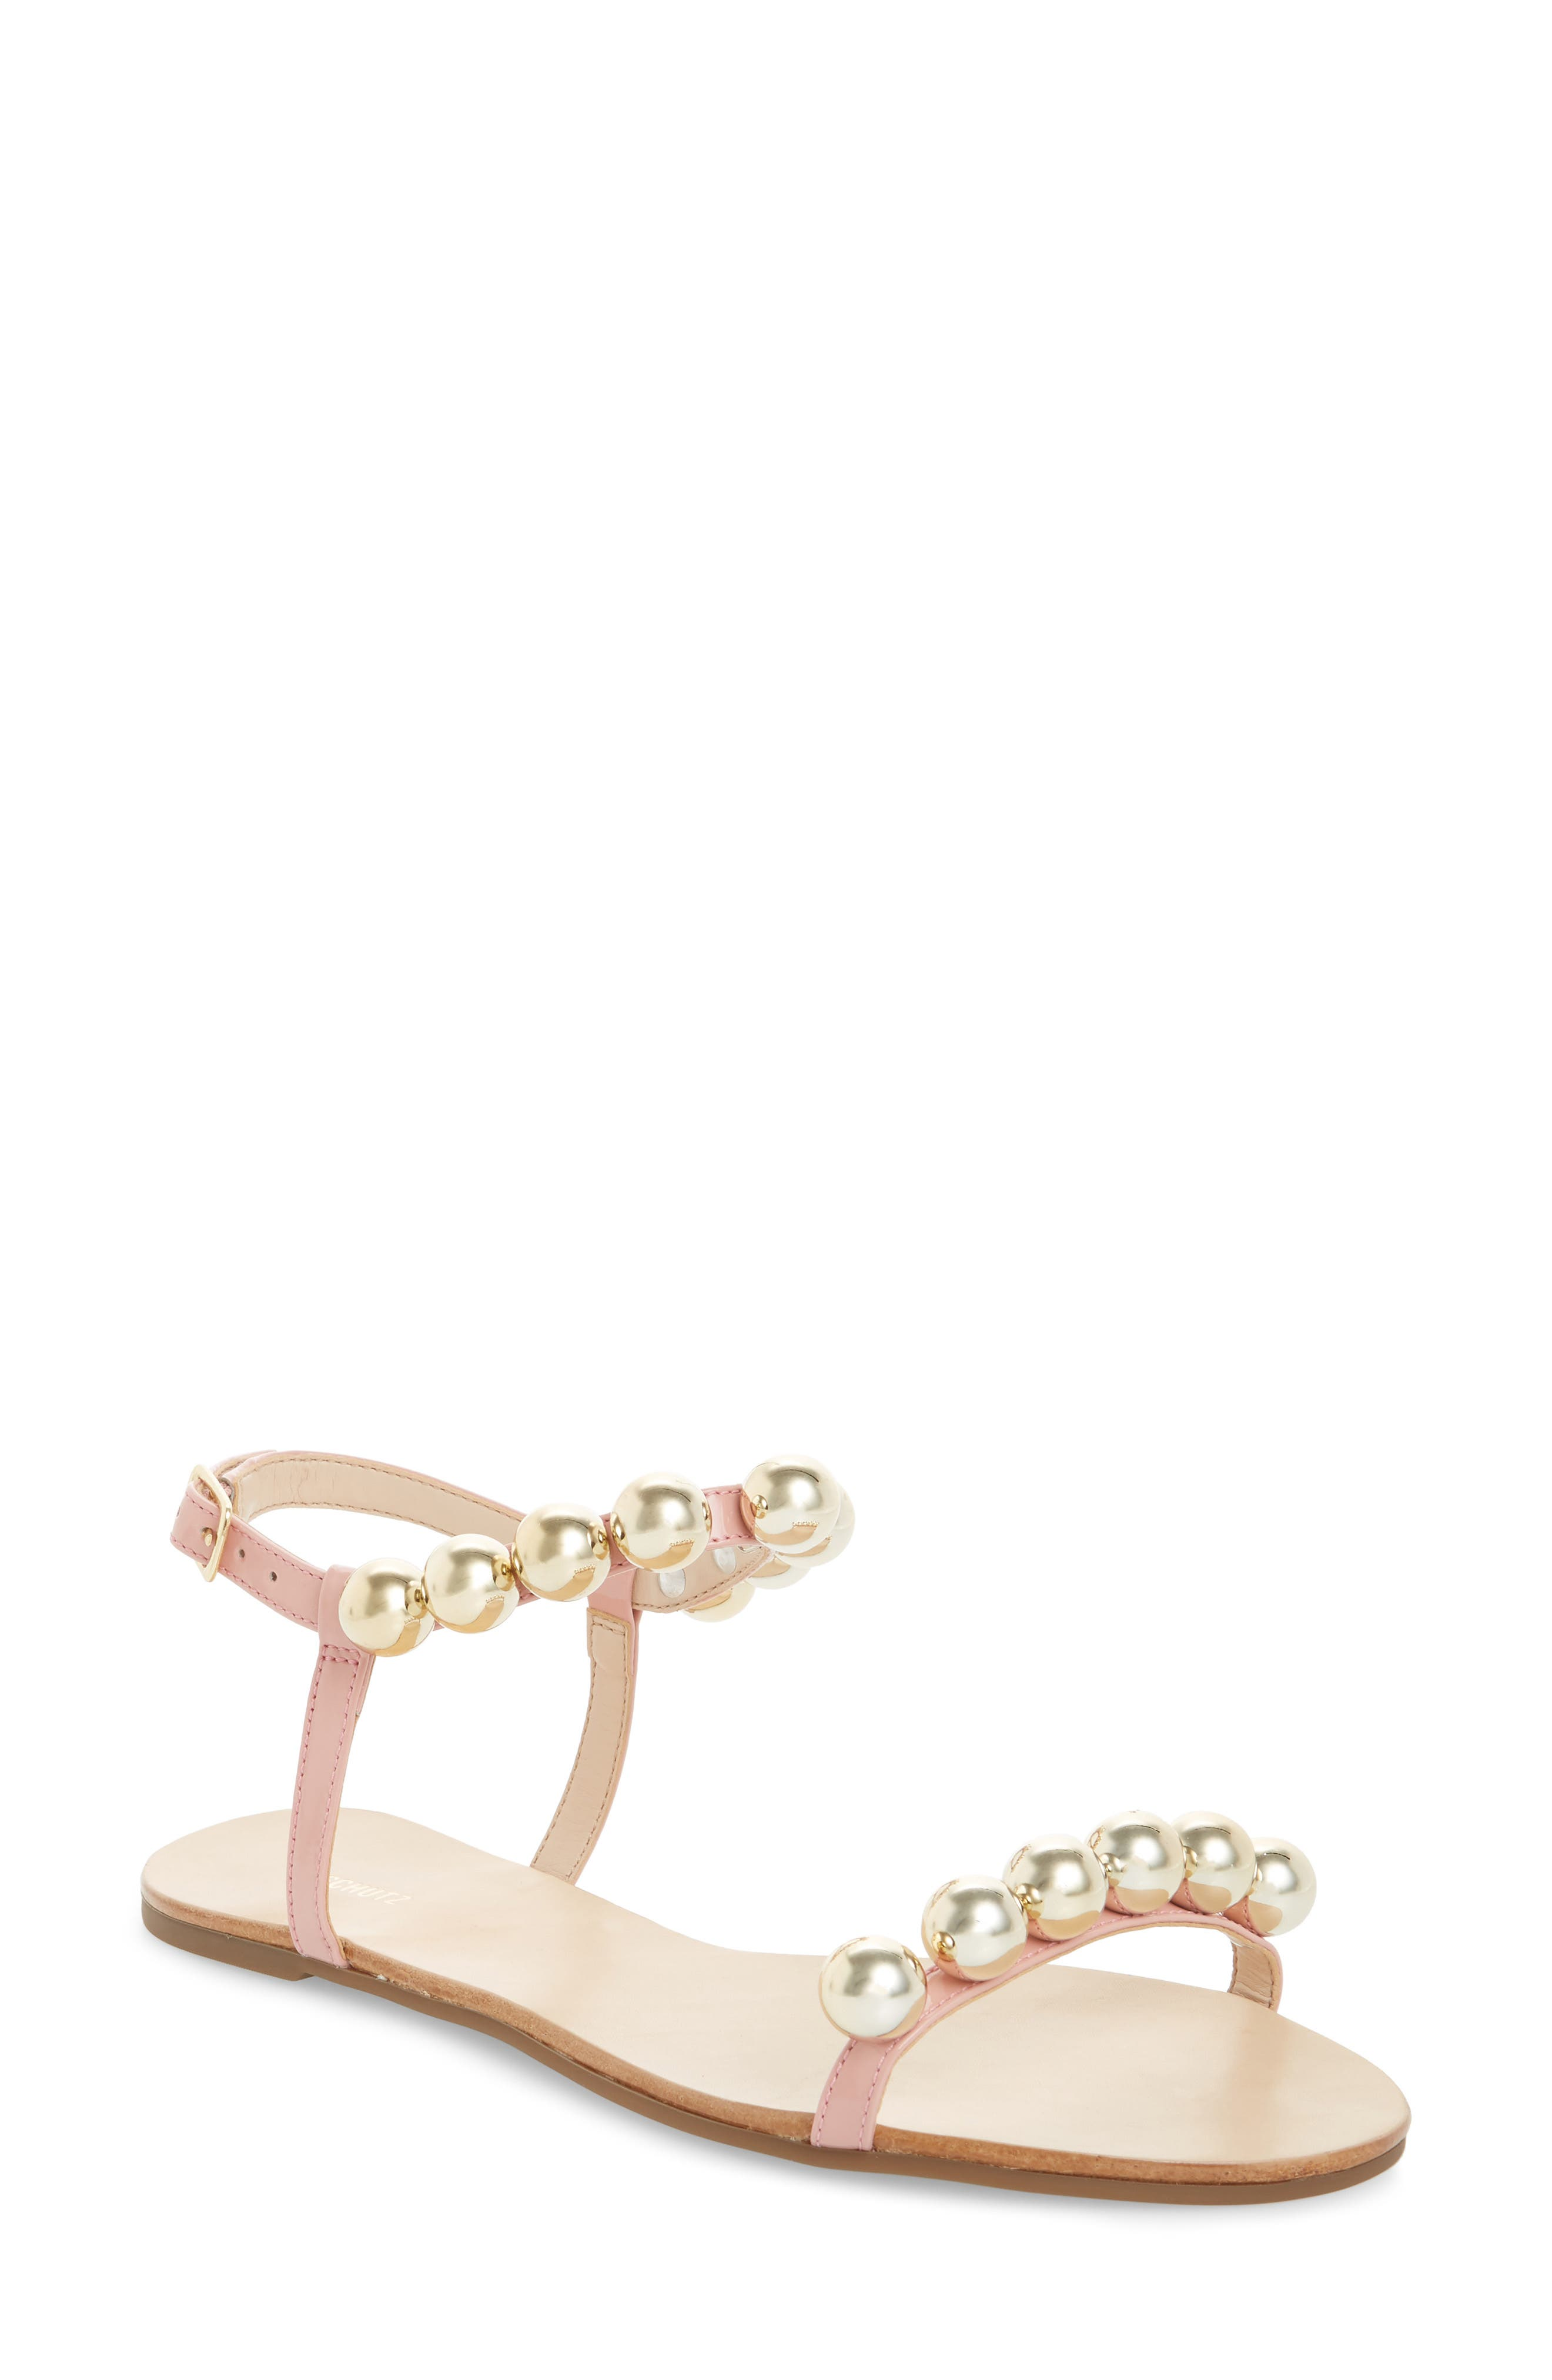 Hebe Ankle Strap Sandal,                             Main thumbnail 1, color,                             Poppy Rose Leather